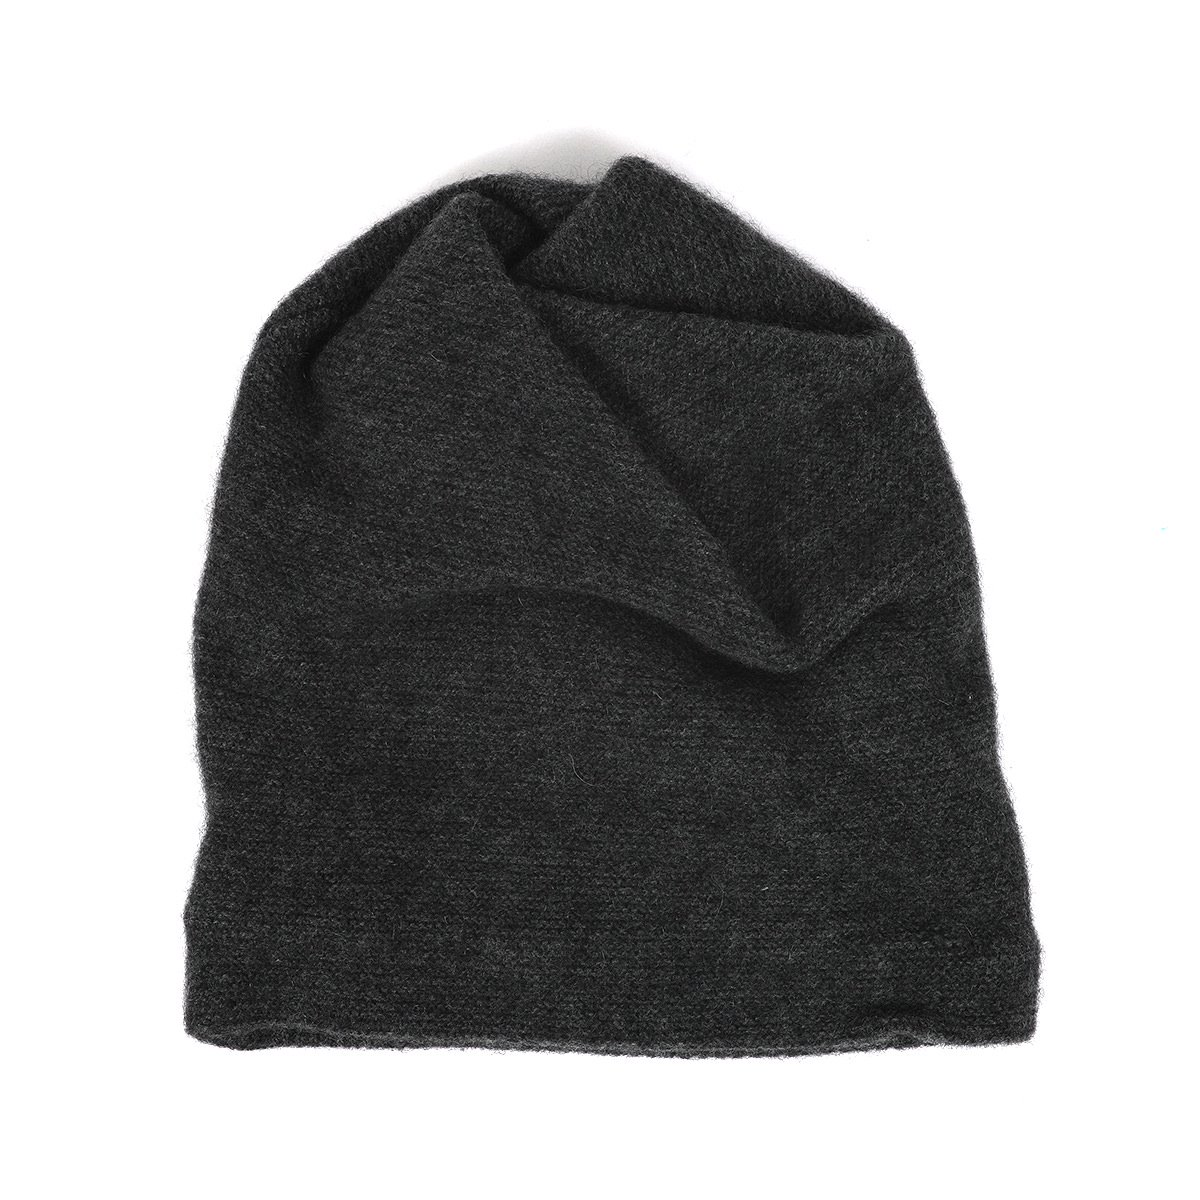 PURE CASHMERE SCREW KNITCAP 詳細画像1